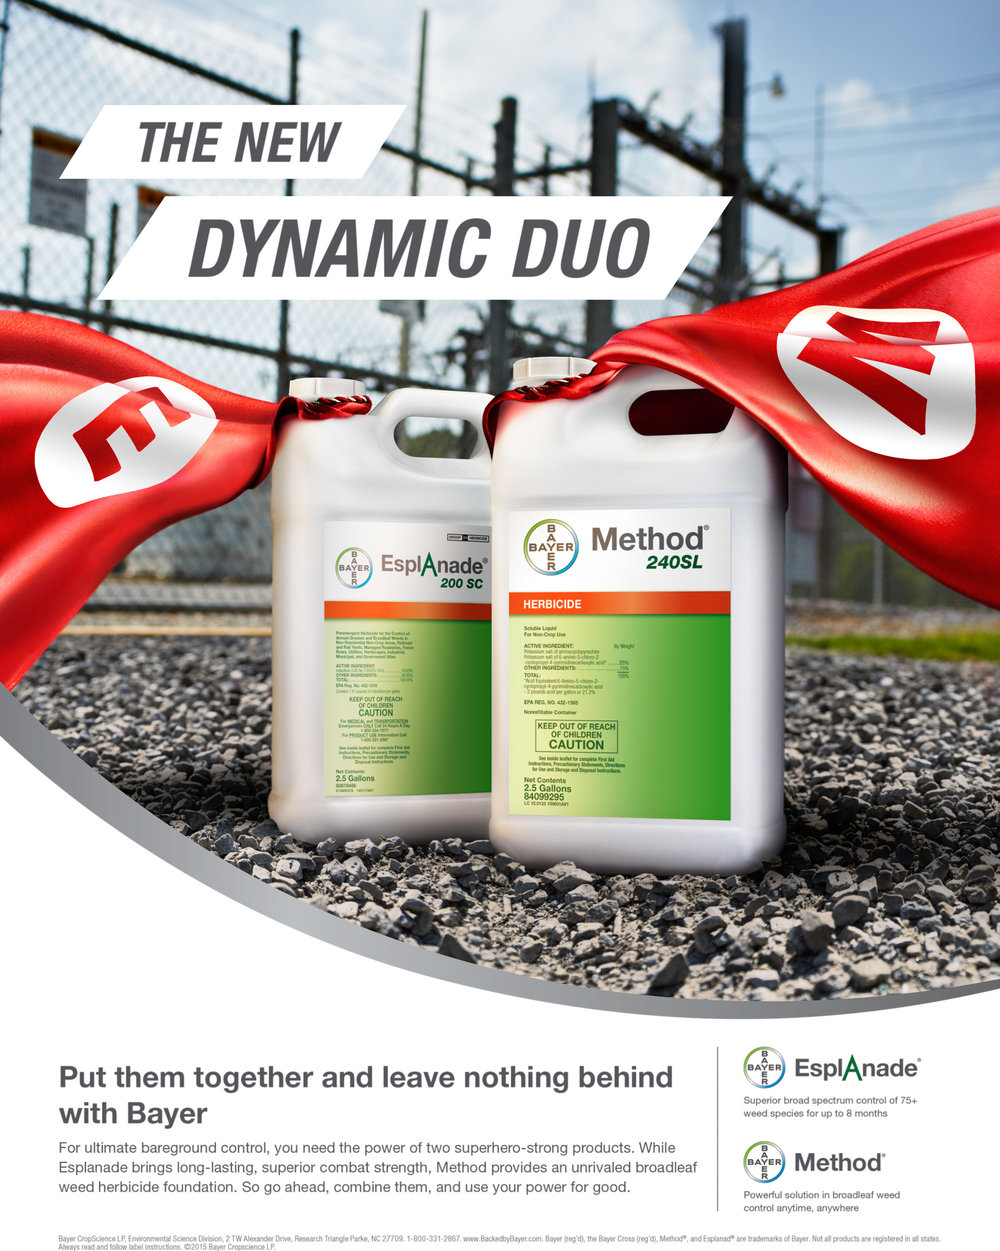 professional composite image of bayer dynamic duo